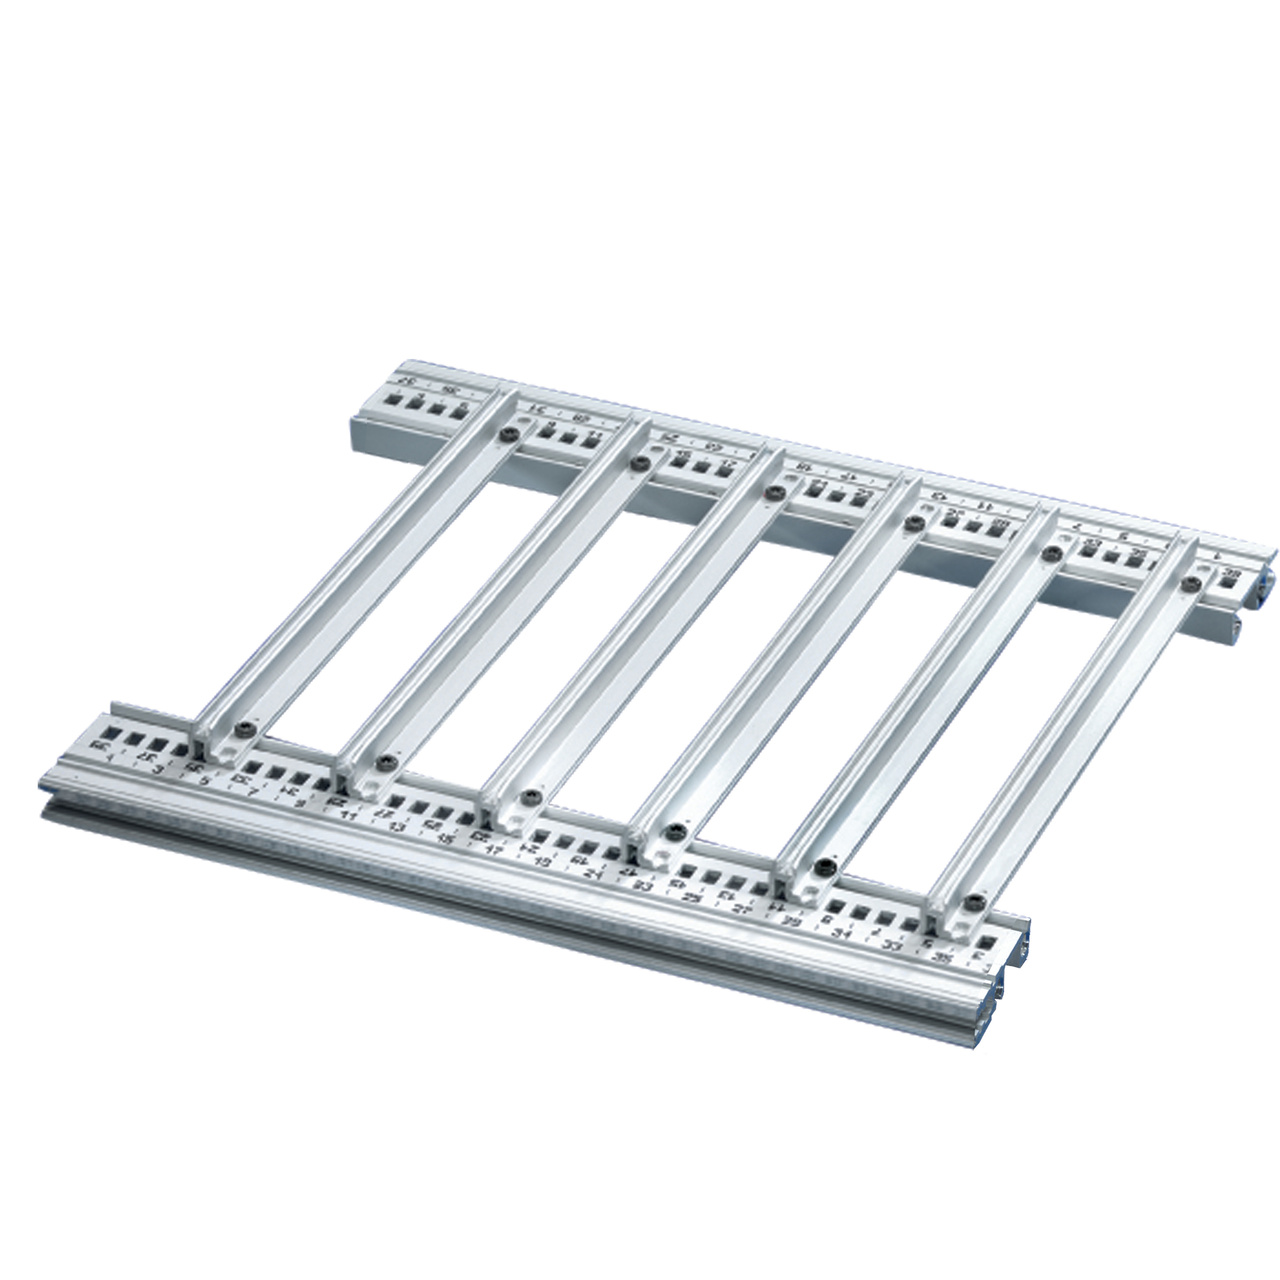 Image for Guide rails, one-piece, for heavy assemblies, robust version from Schroff - North America